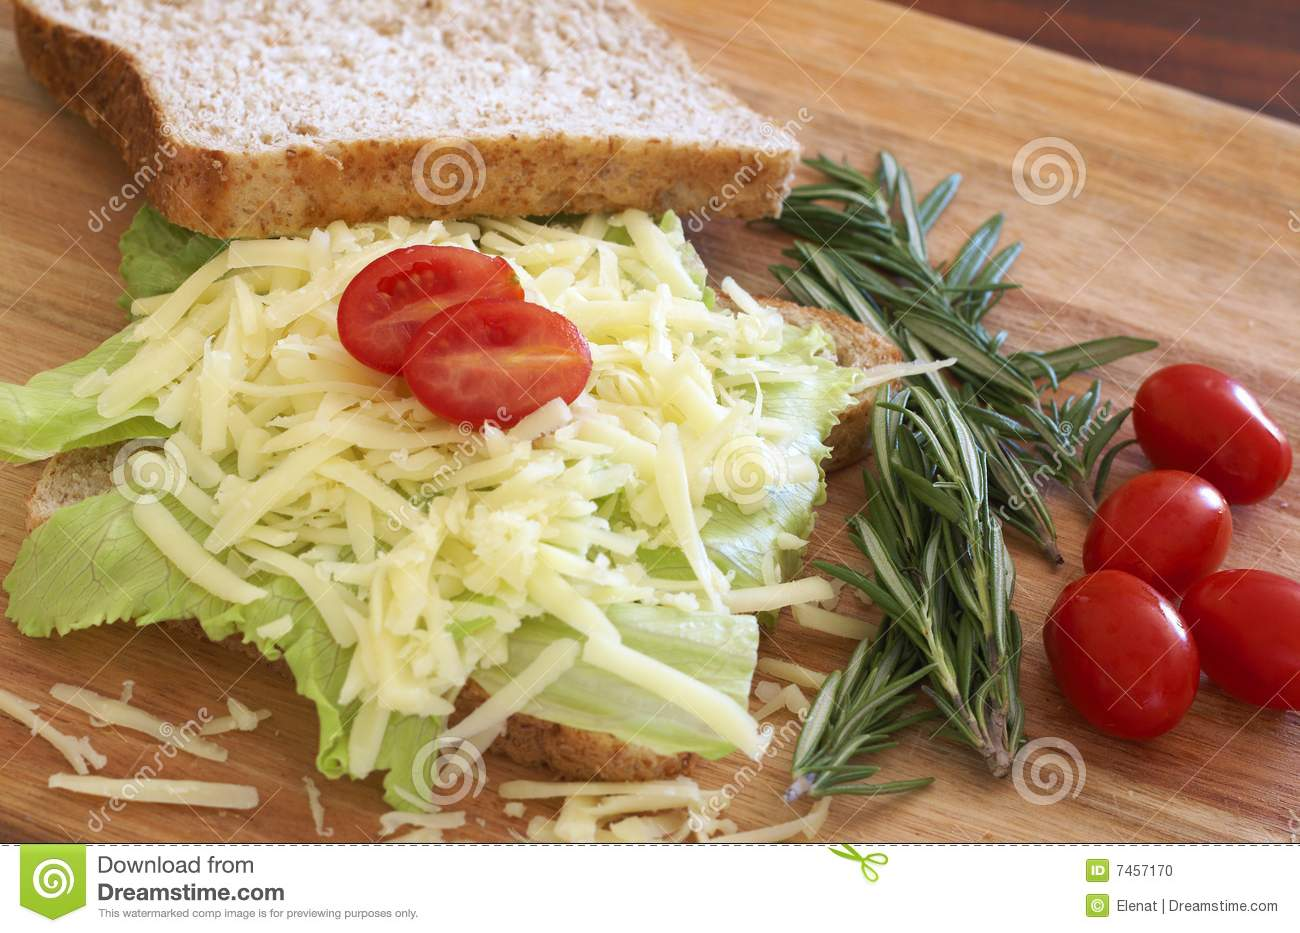 Smakelijke open sandwich op wholewheat brood